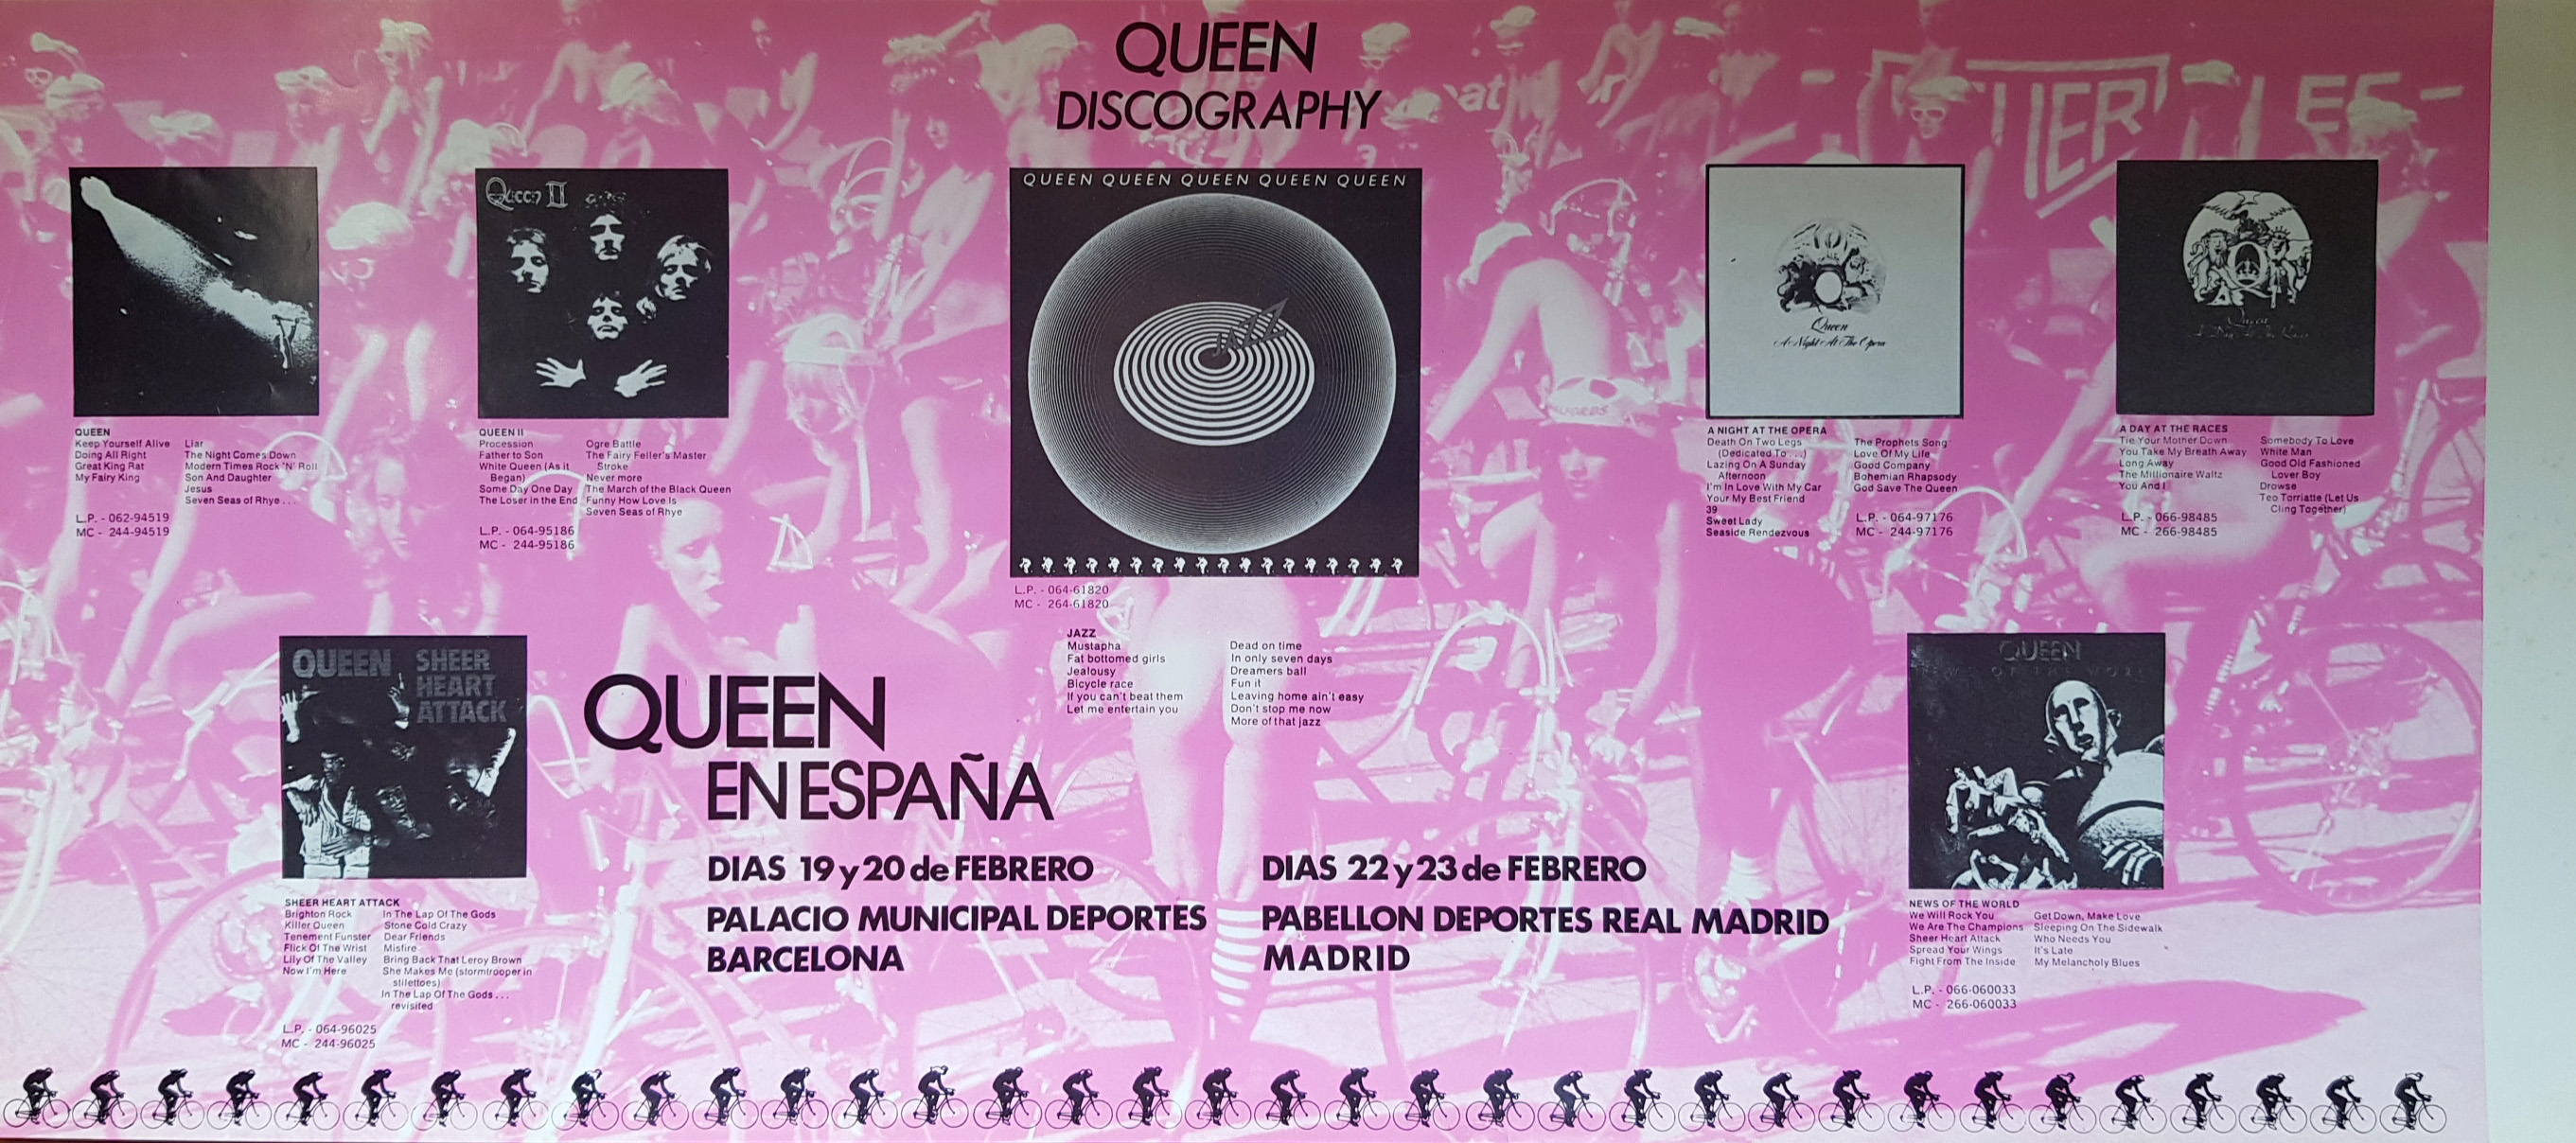 Queen in Barcelona and Madrid in February 1979